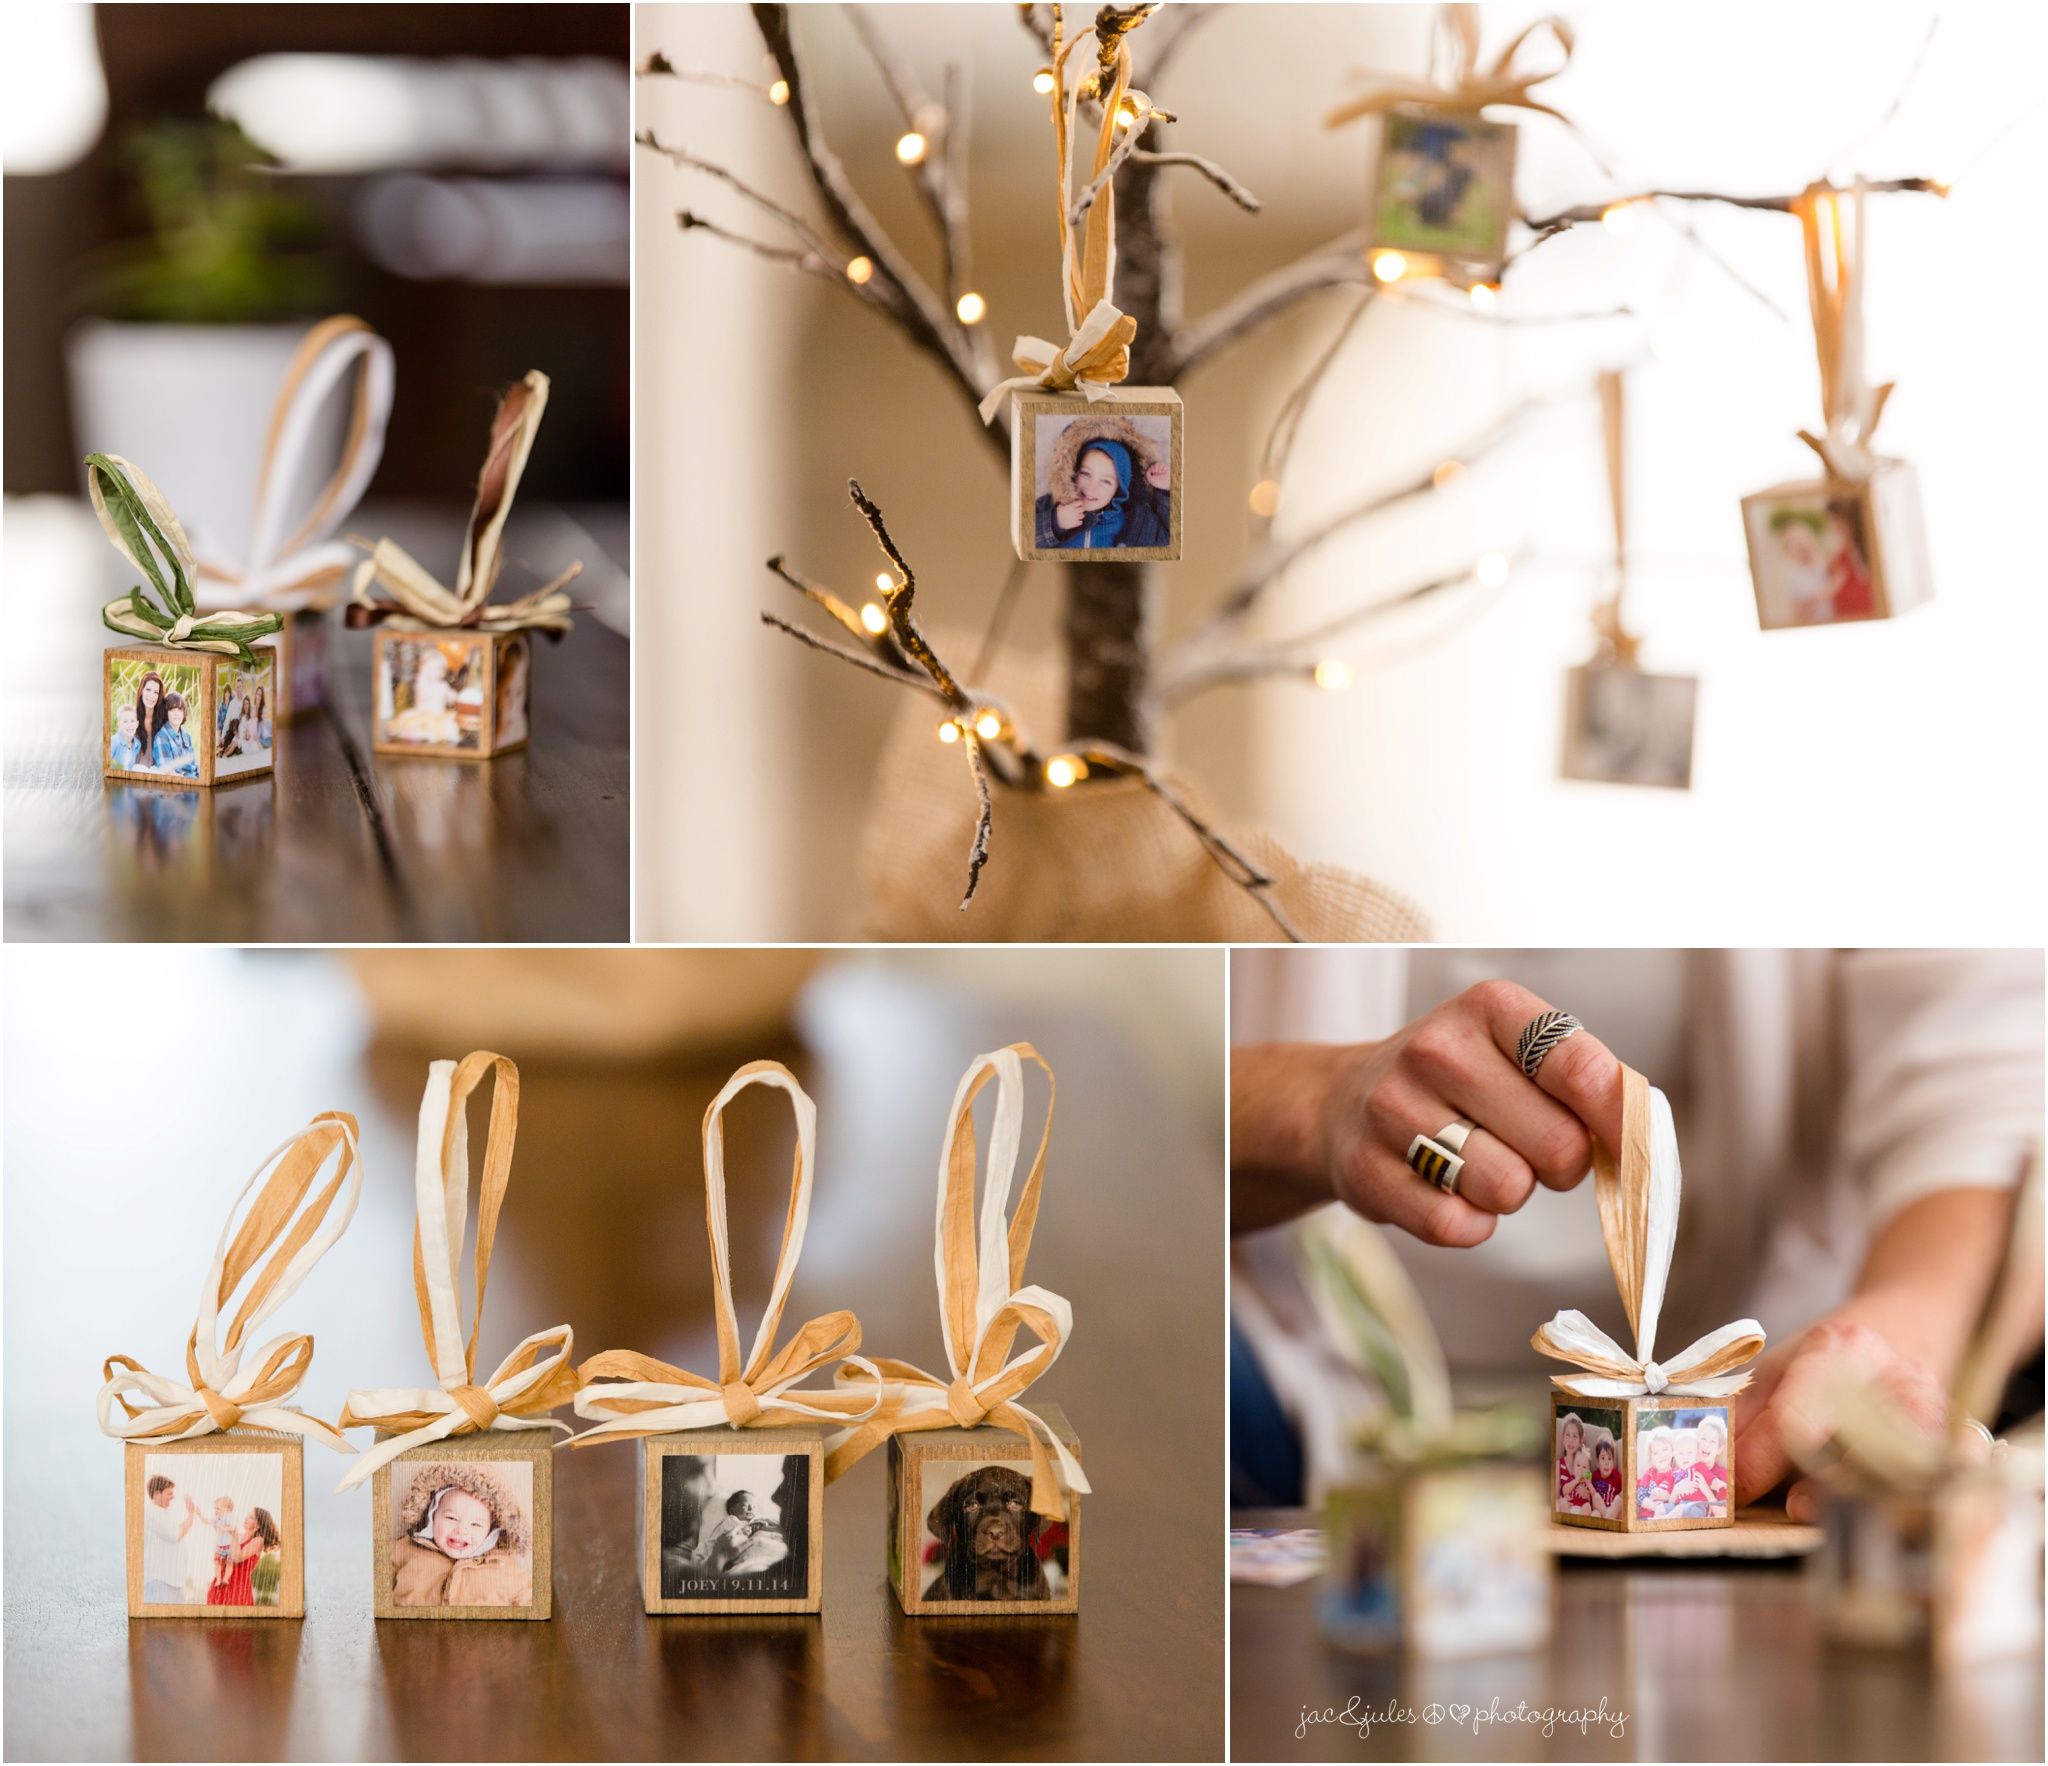 completed diy project wooden block photo ornaments